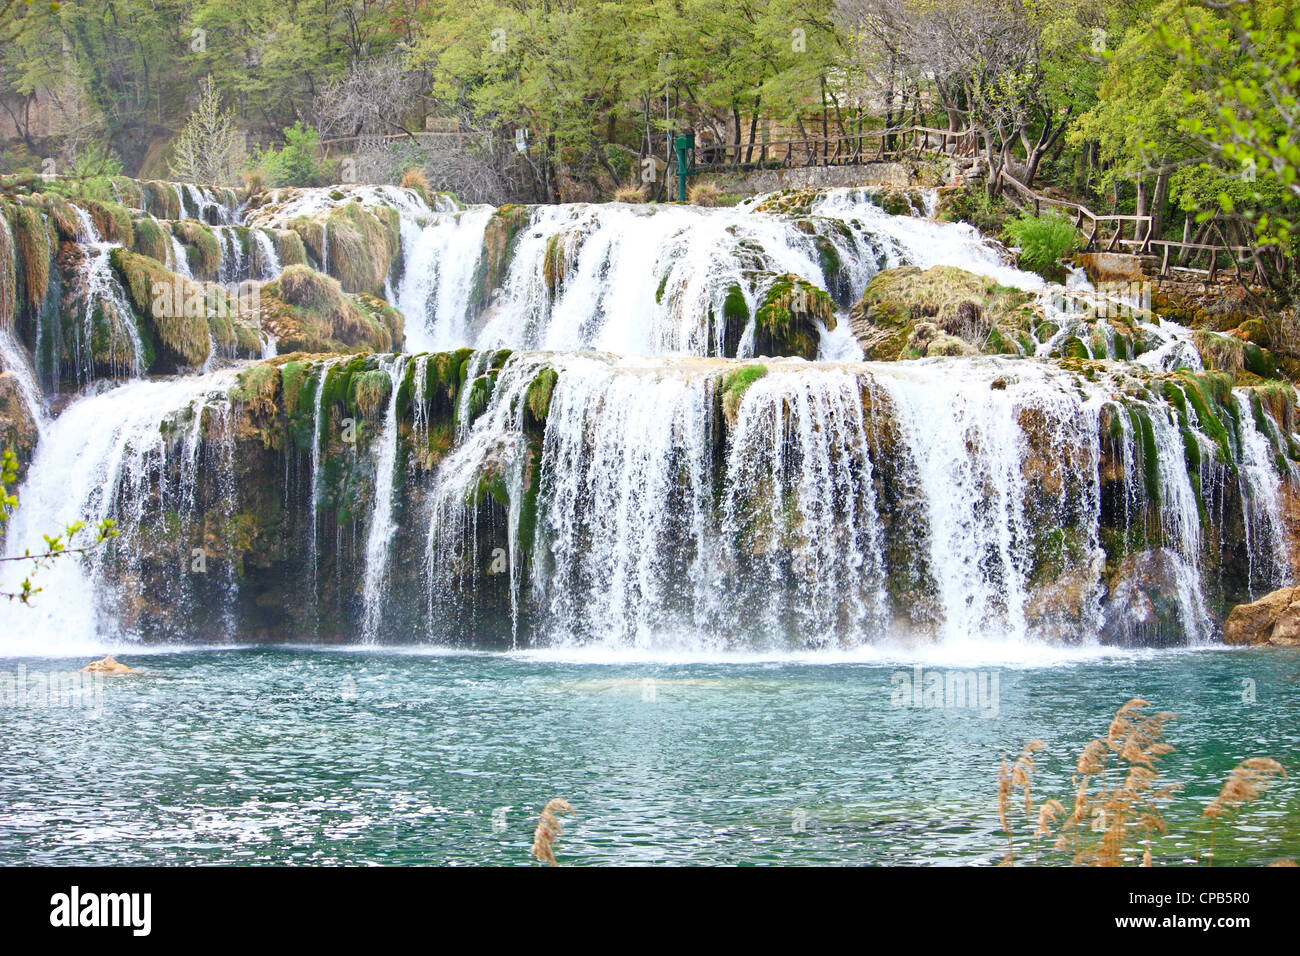 National park Krka, waterfall on Krka river, Croatia Stock Photo